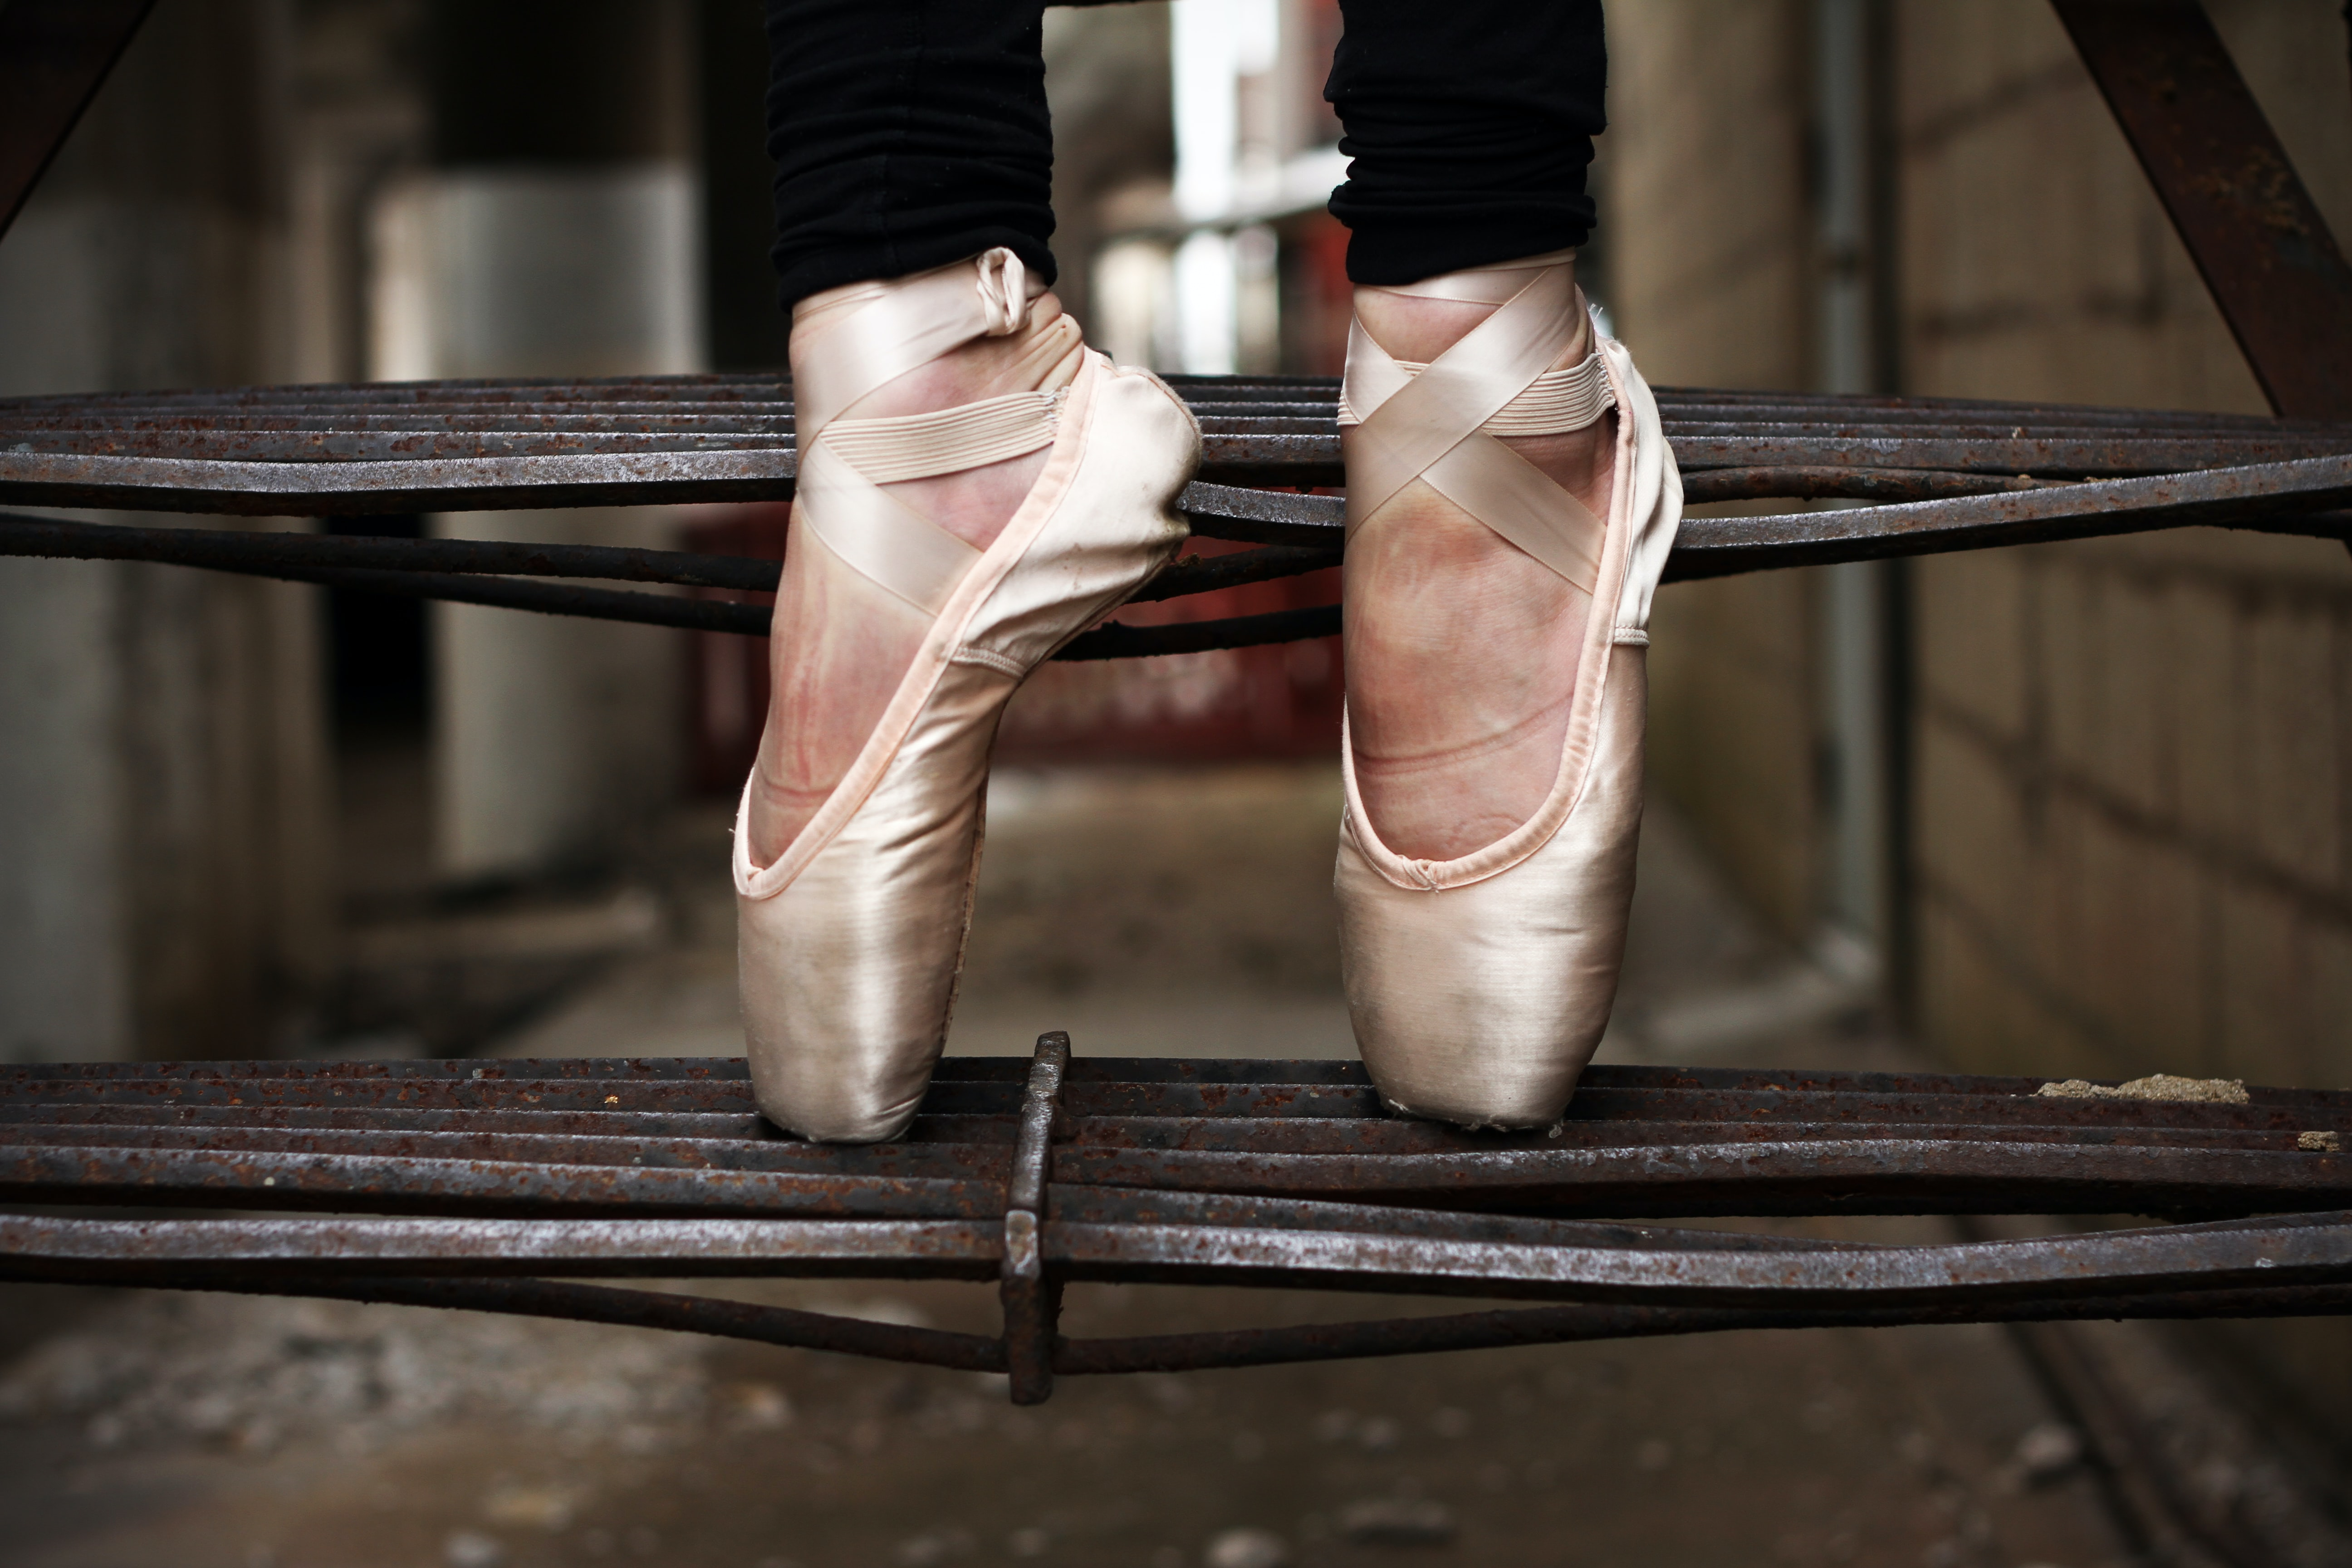 A woman standing on her tippy-toes in dance shoes on an outdoor staircase.